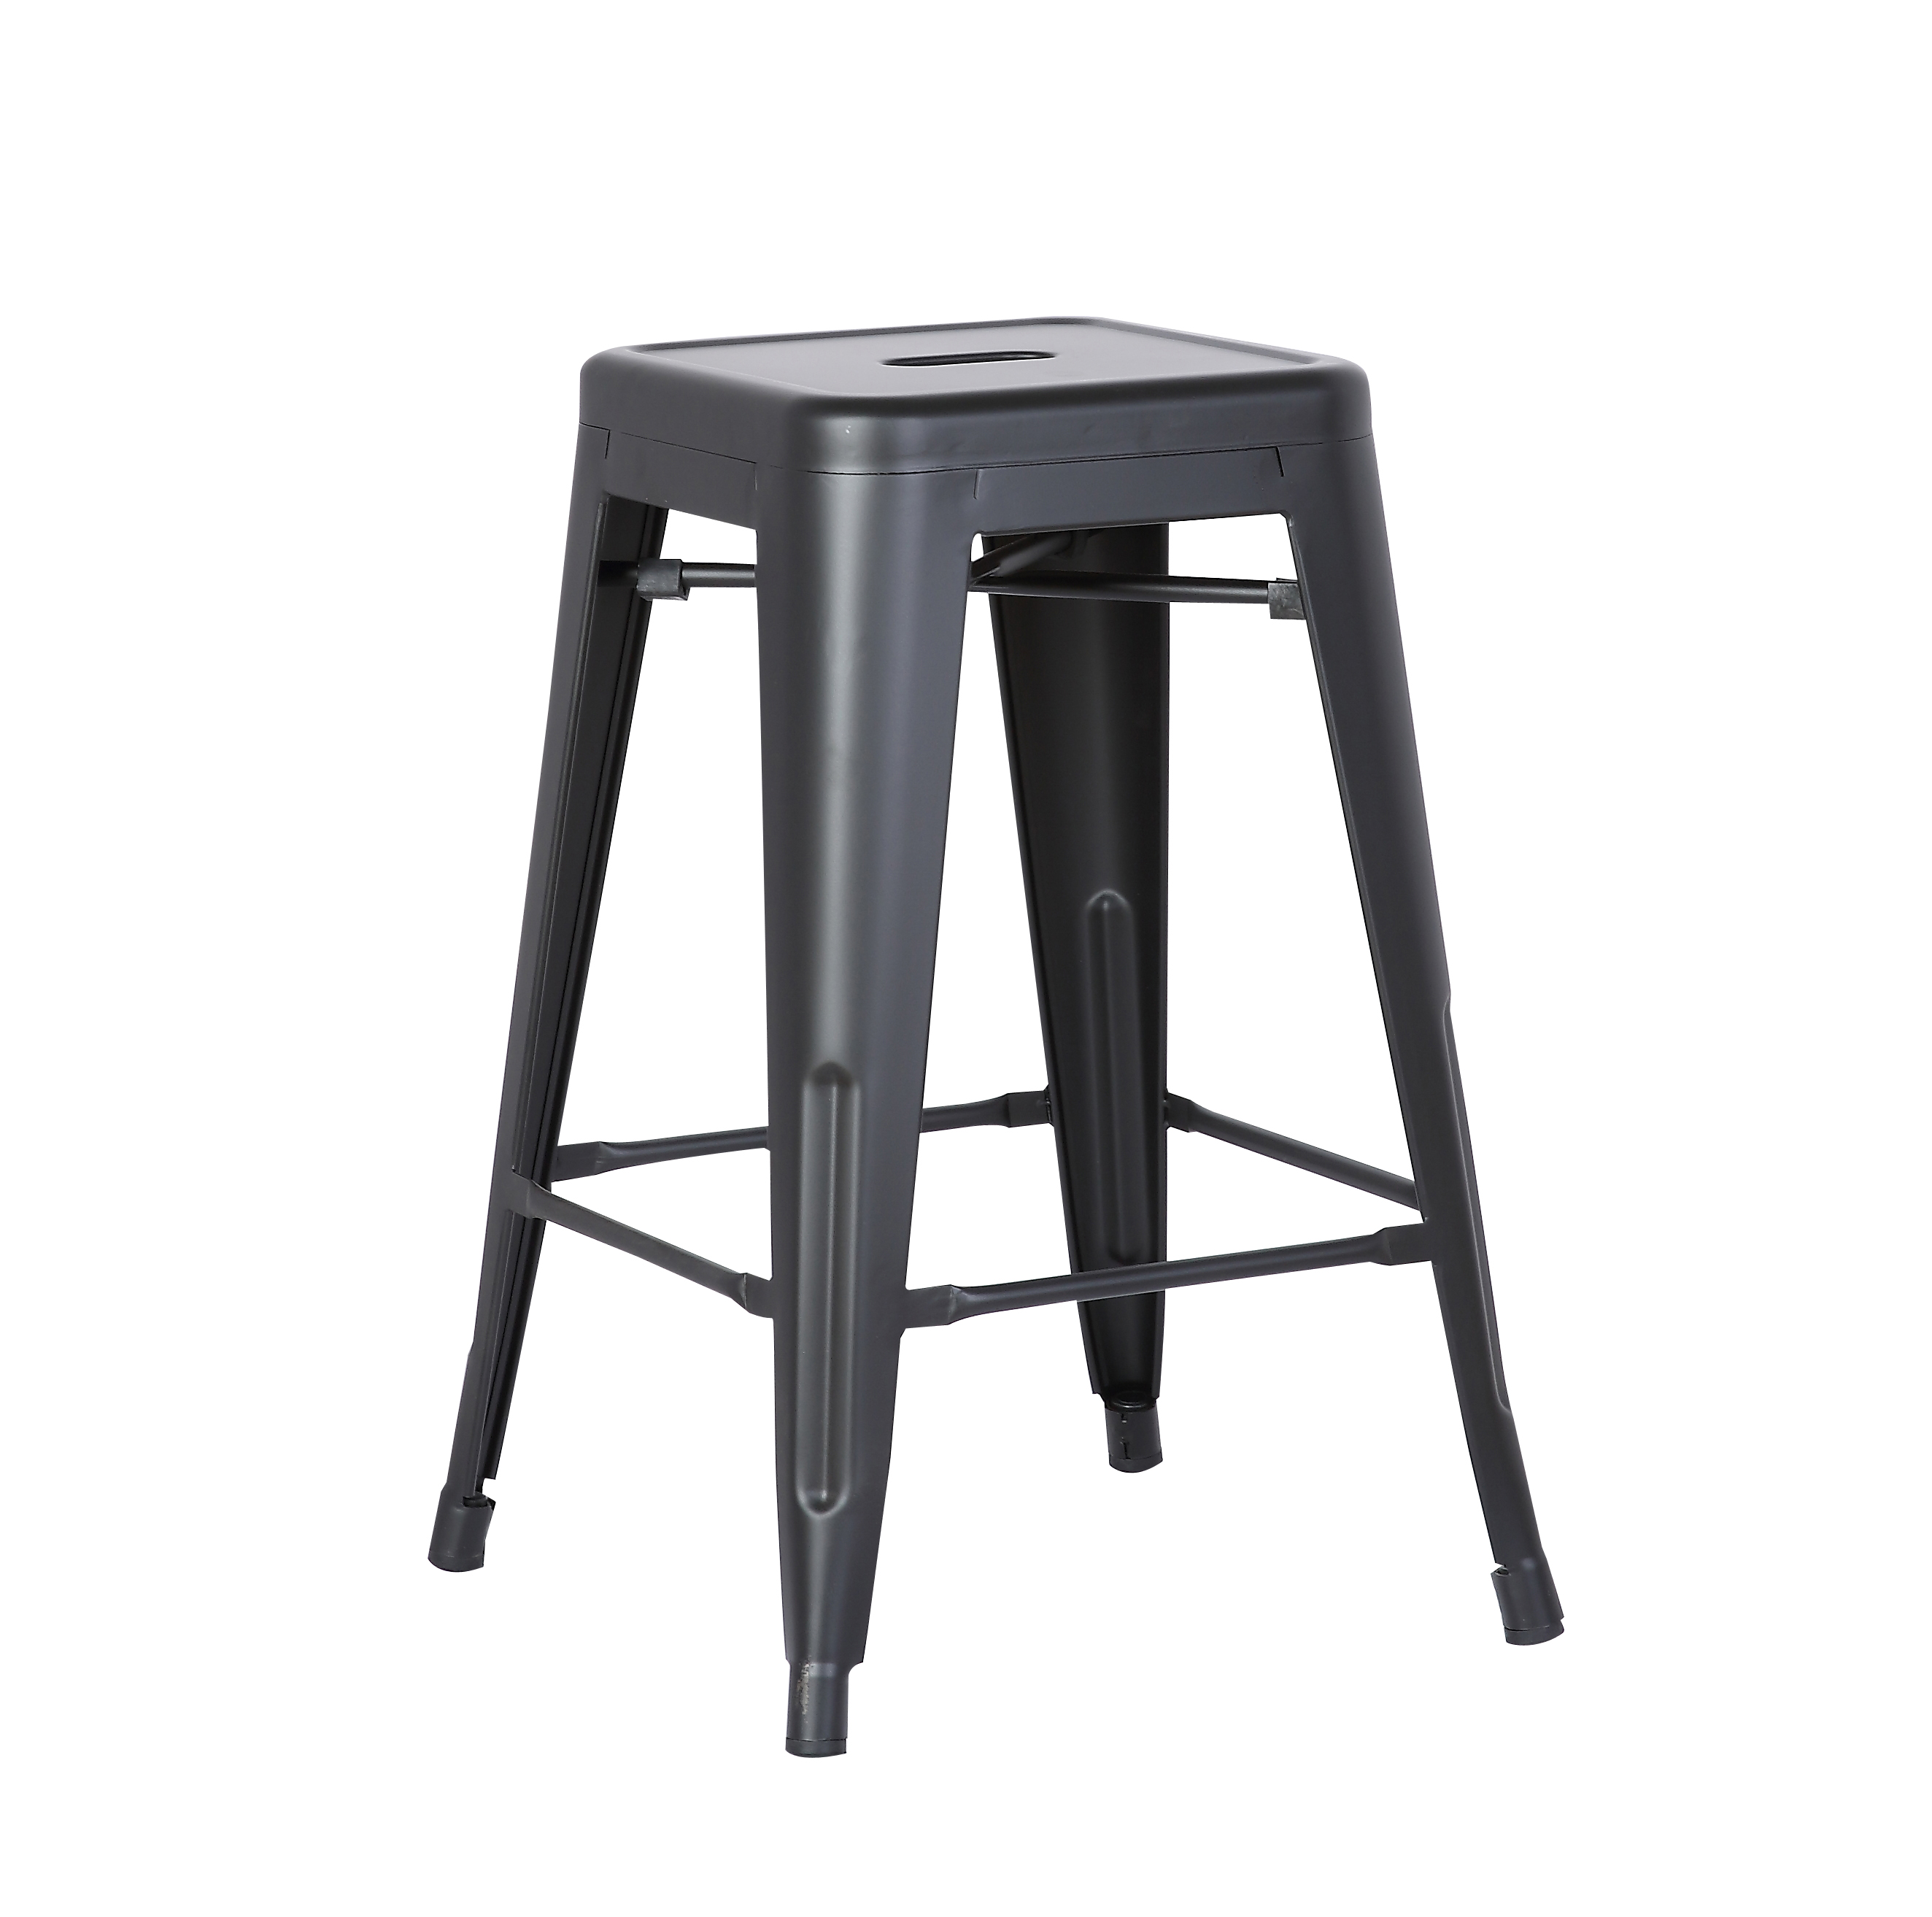 Backless Industrial Metal Bar Stools - Matte Black (Set of 2) - Christies Home Living  sc 1 st  Christies Home Living & Backless Industrial Metal Bar Stools - Matte Black (Set of 2 ... islam-shia.org